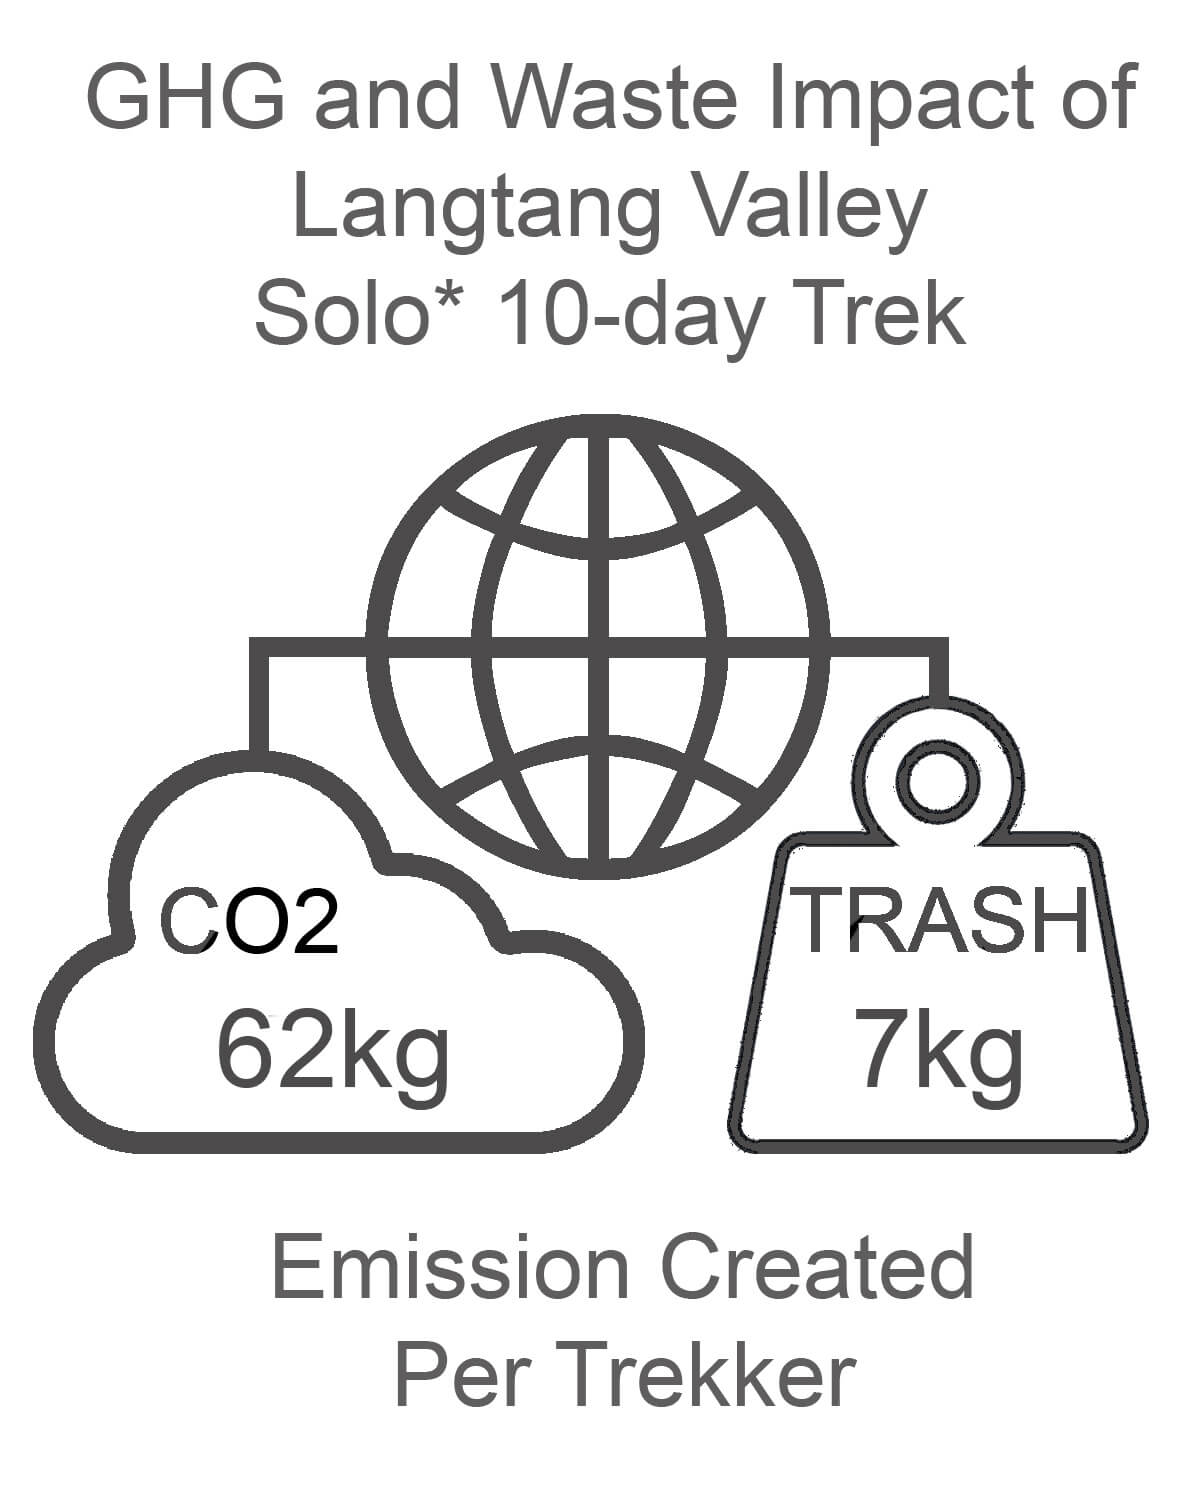 Langtang Valley GHG and Waste Impact SOLO